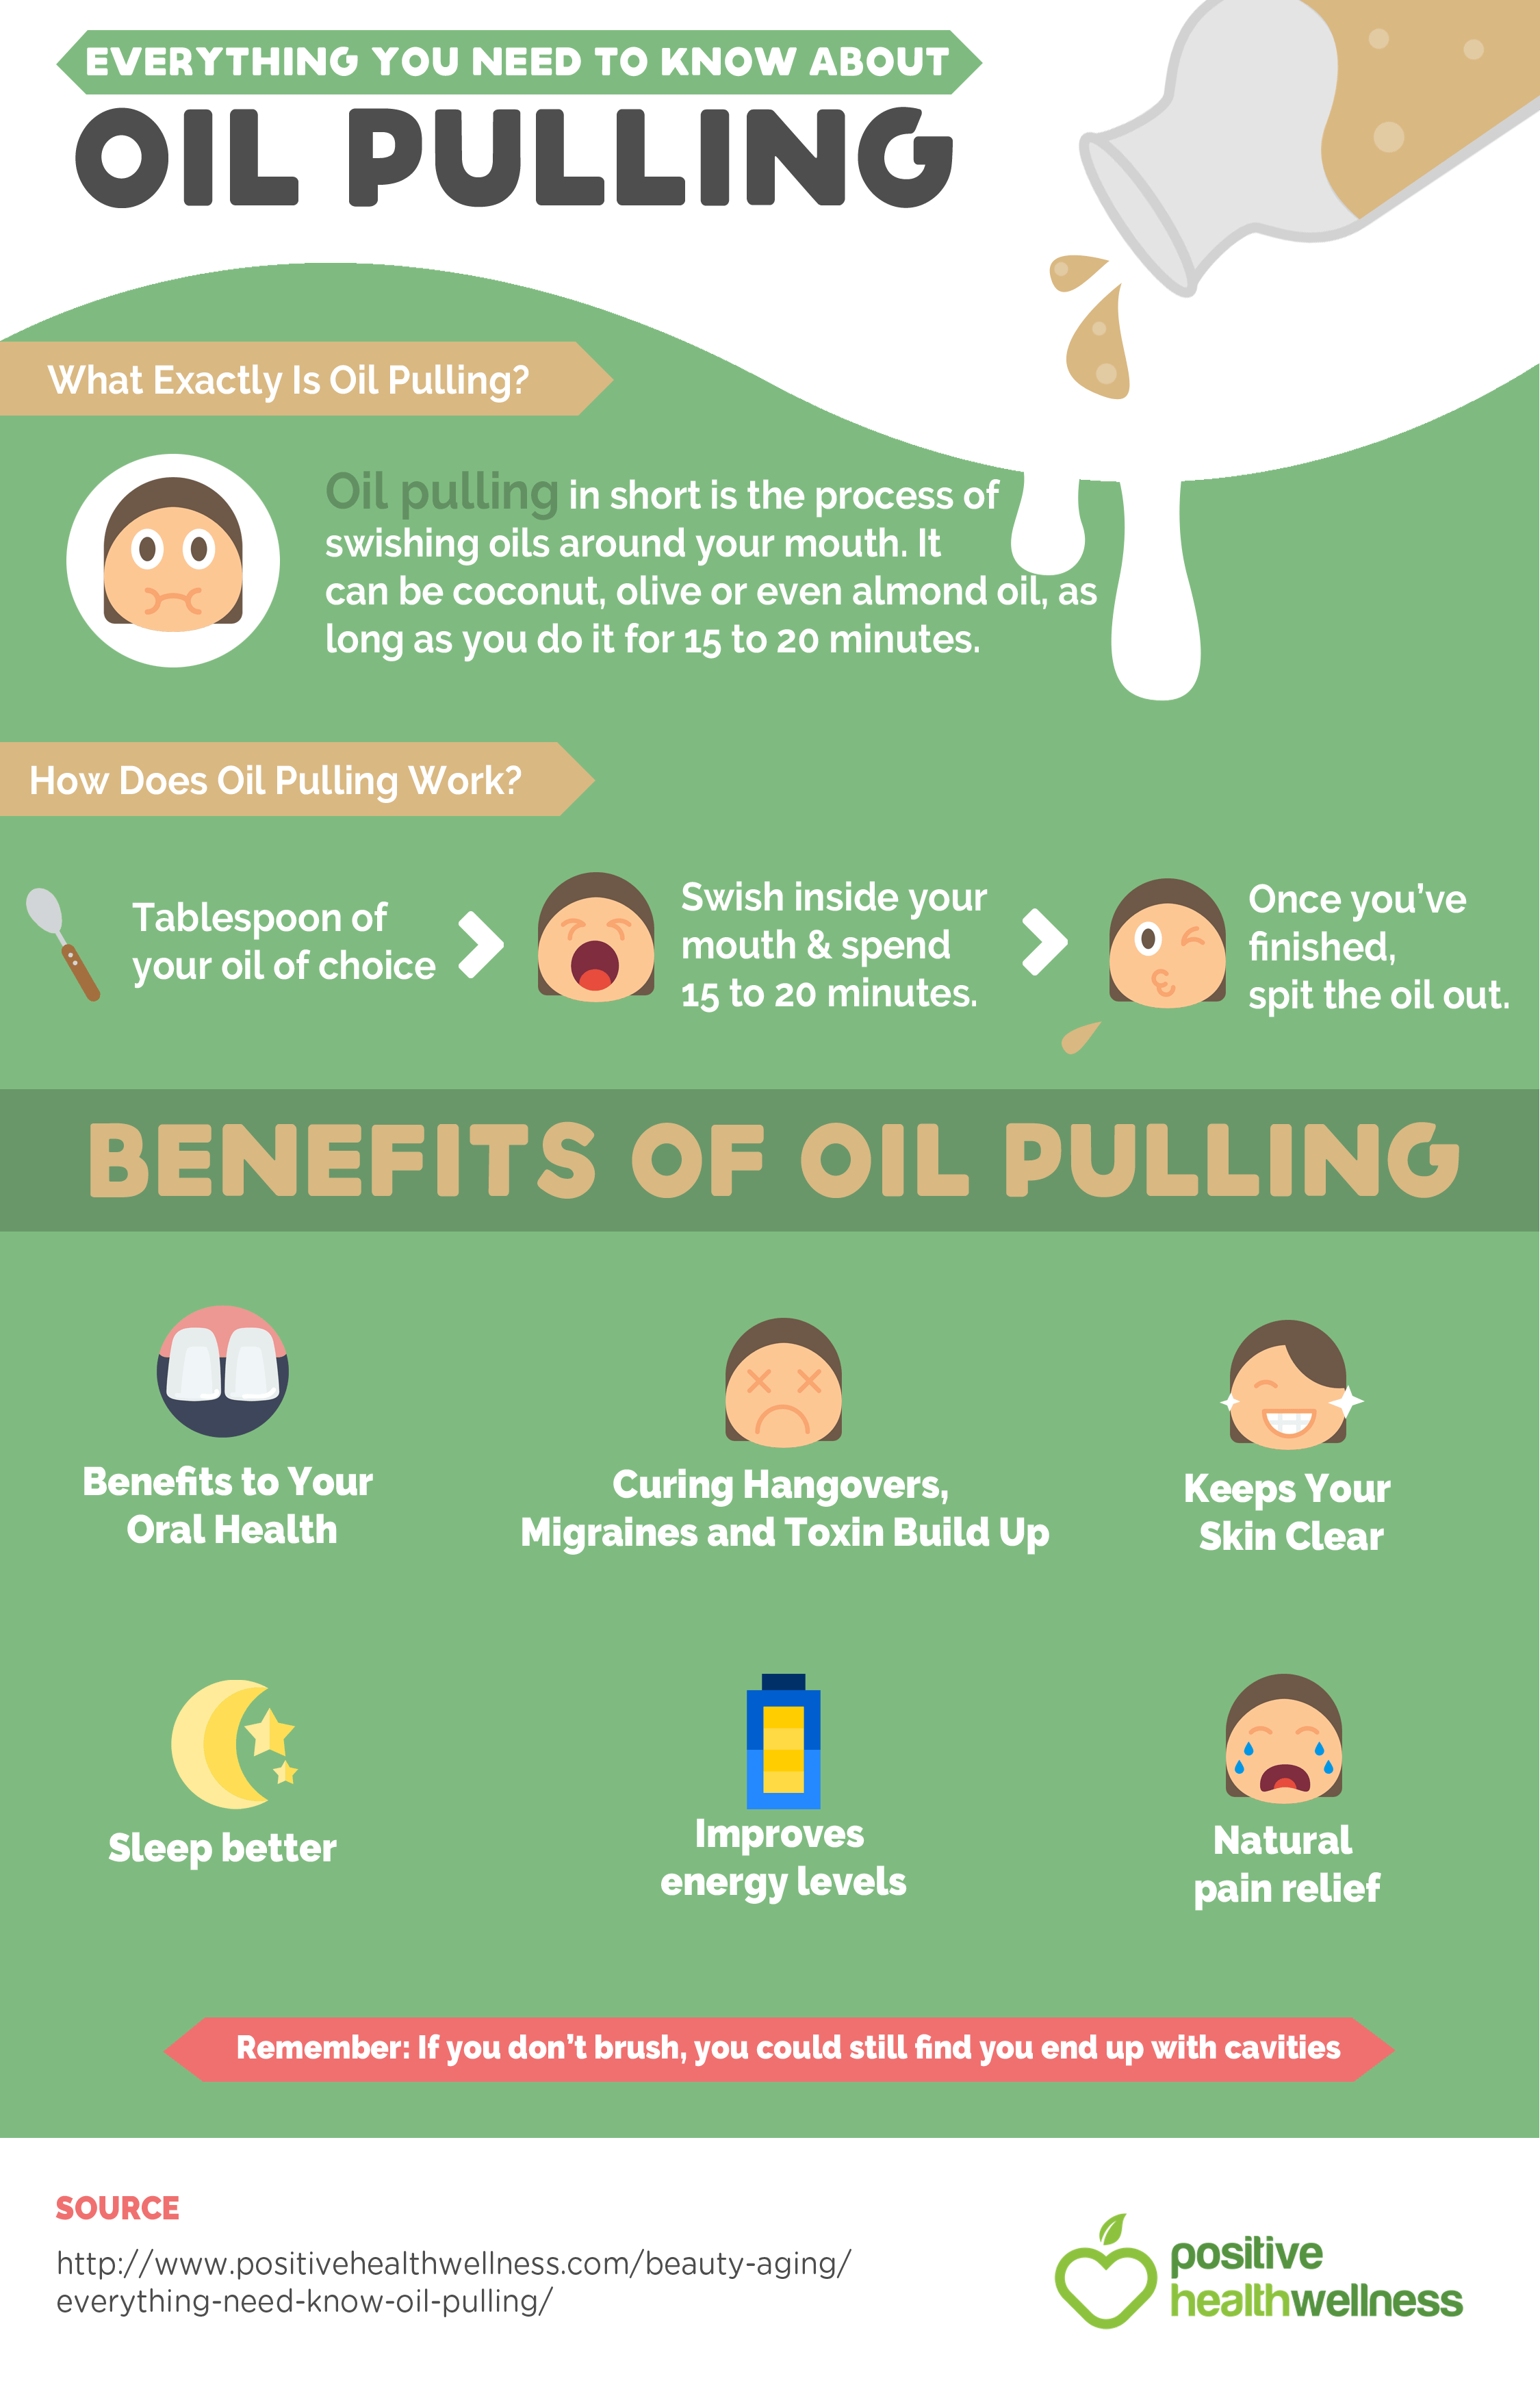 Everything You Need To Know About Oil Pulling